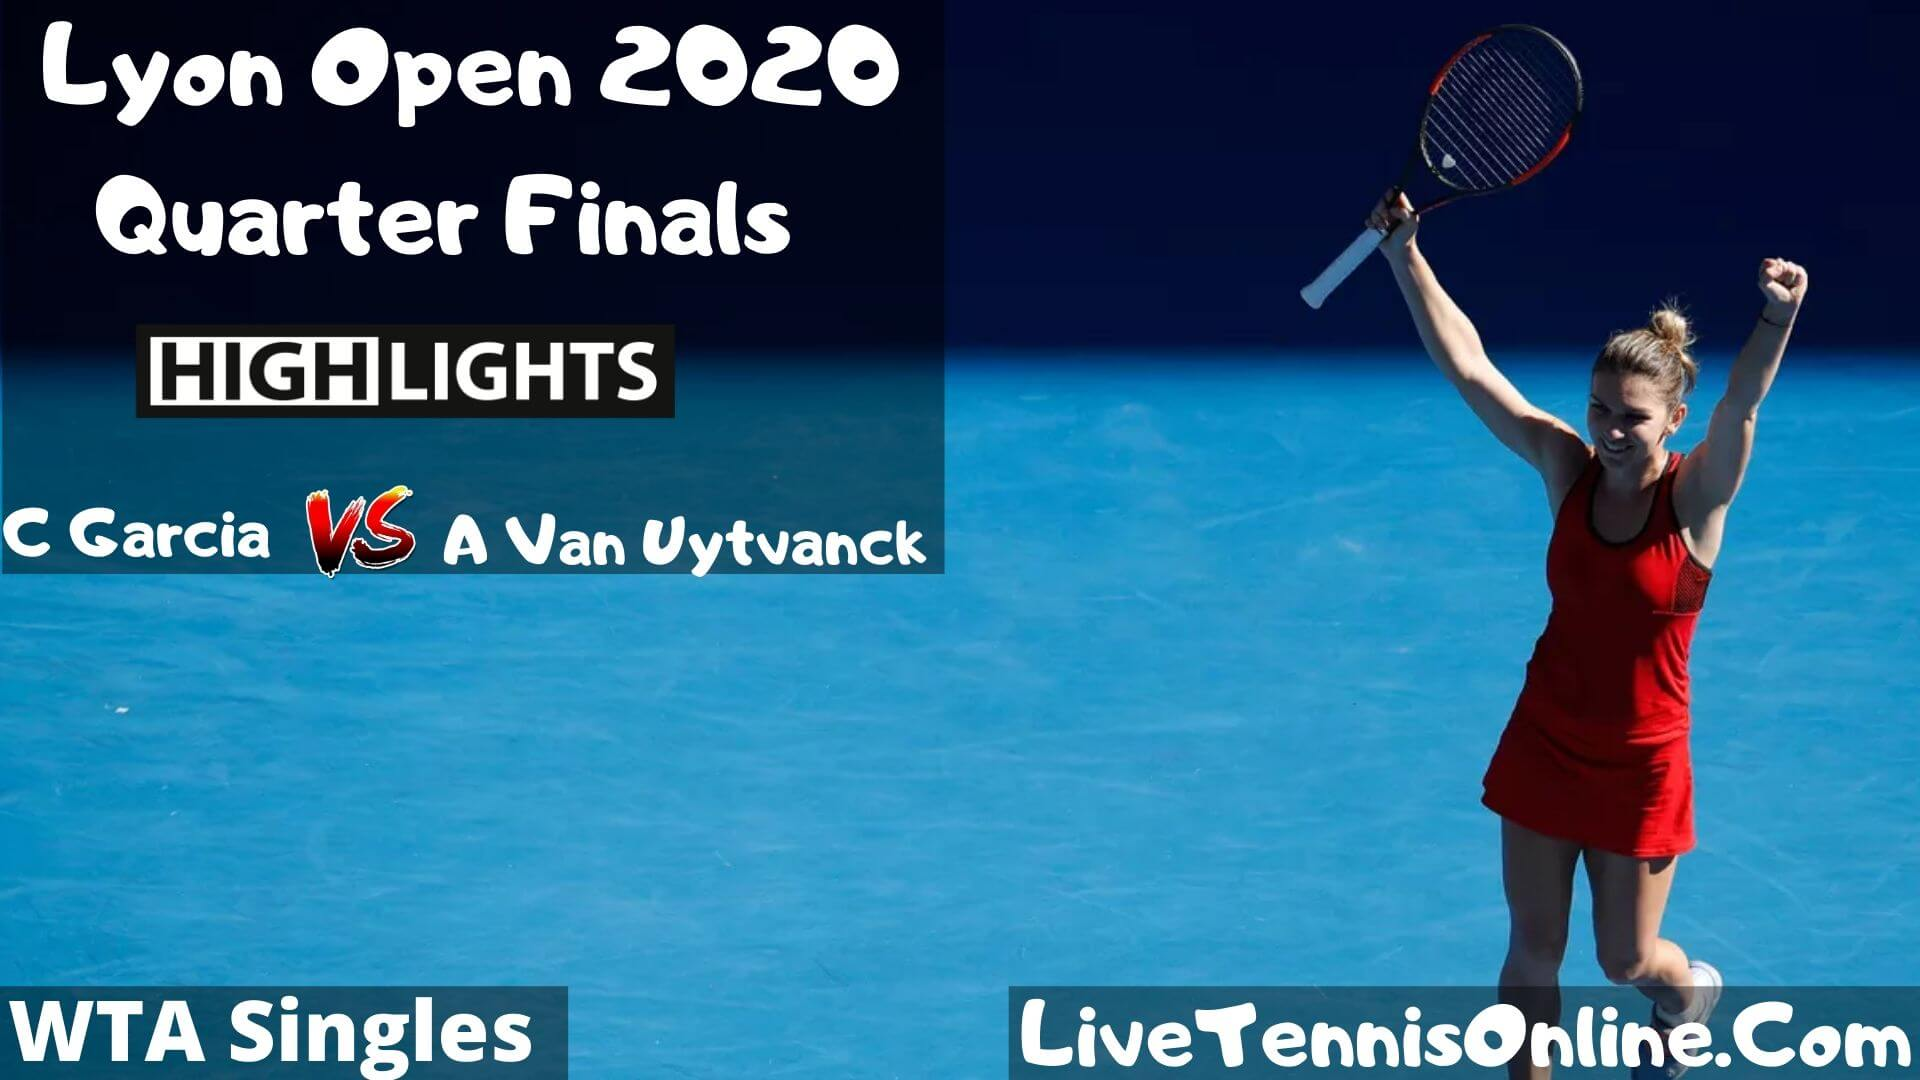 C Garcia Vs A Van Uytvanck Highlights 2020 QF Lyon Open